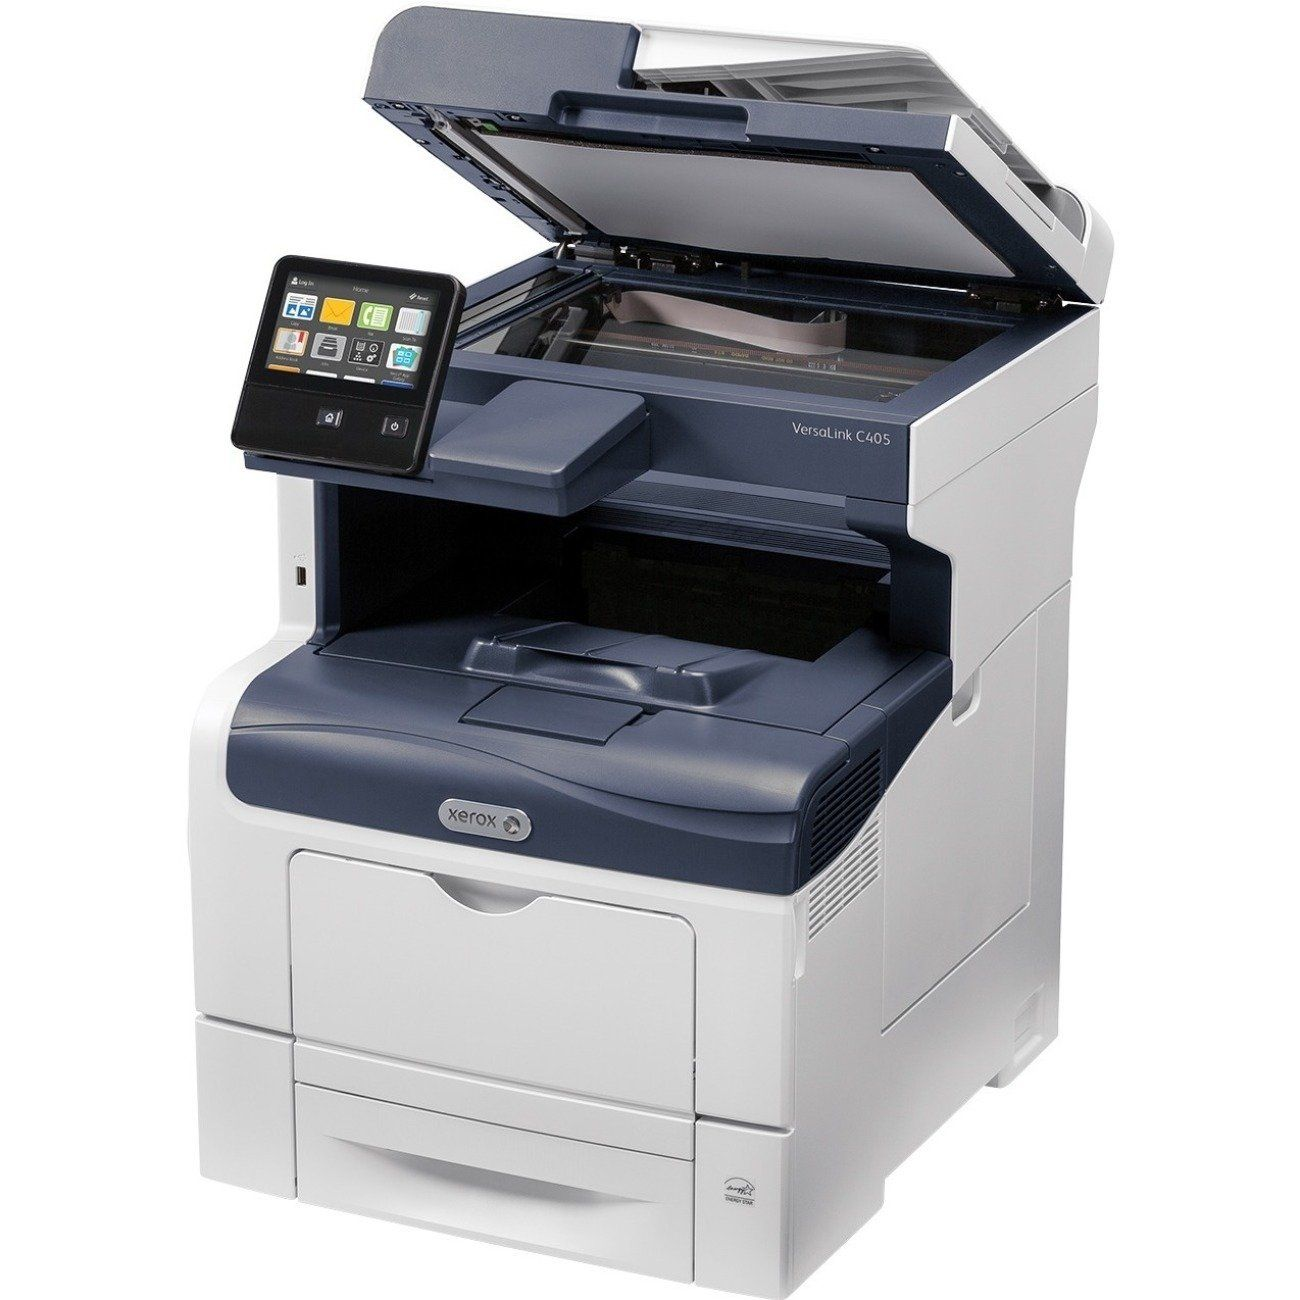 Xerox Versalink C405 Dn Laser Multifunction Printer Color